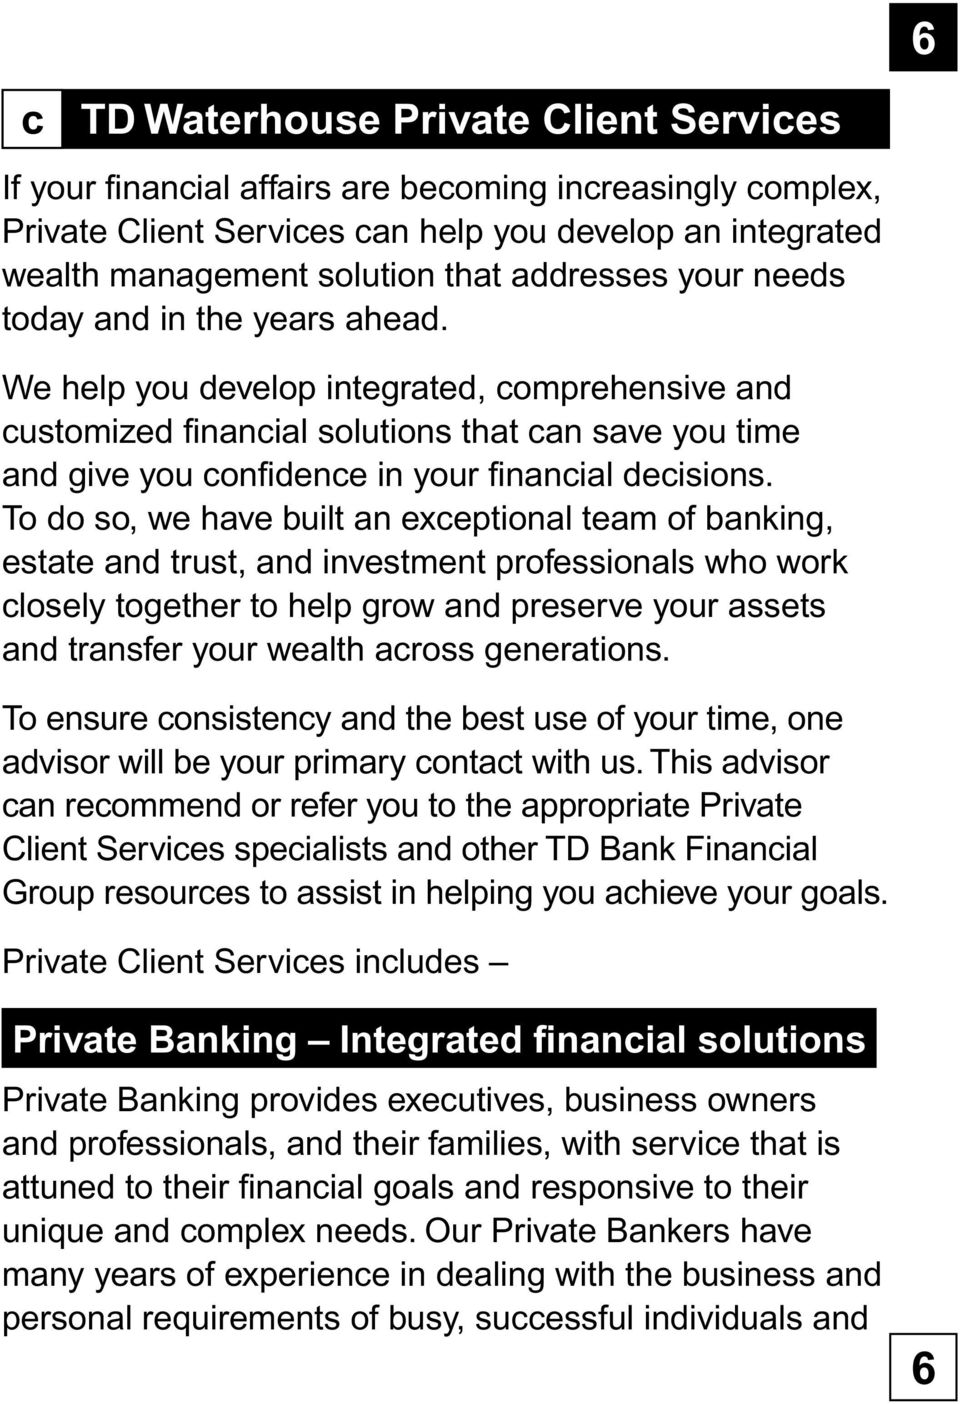 Discover TD Waterhouse  Investment and wealth management for